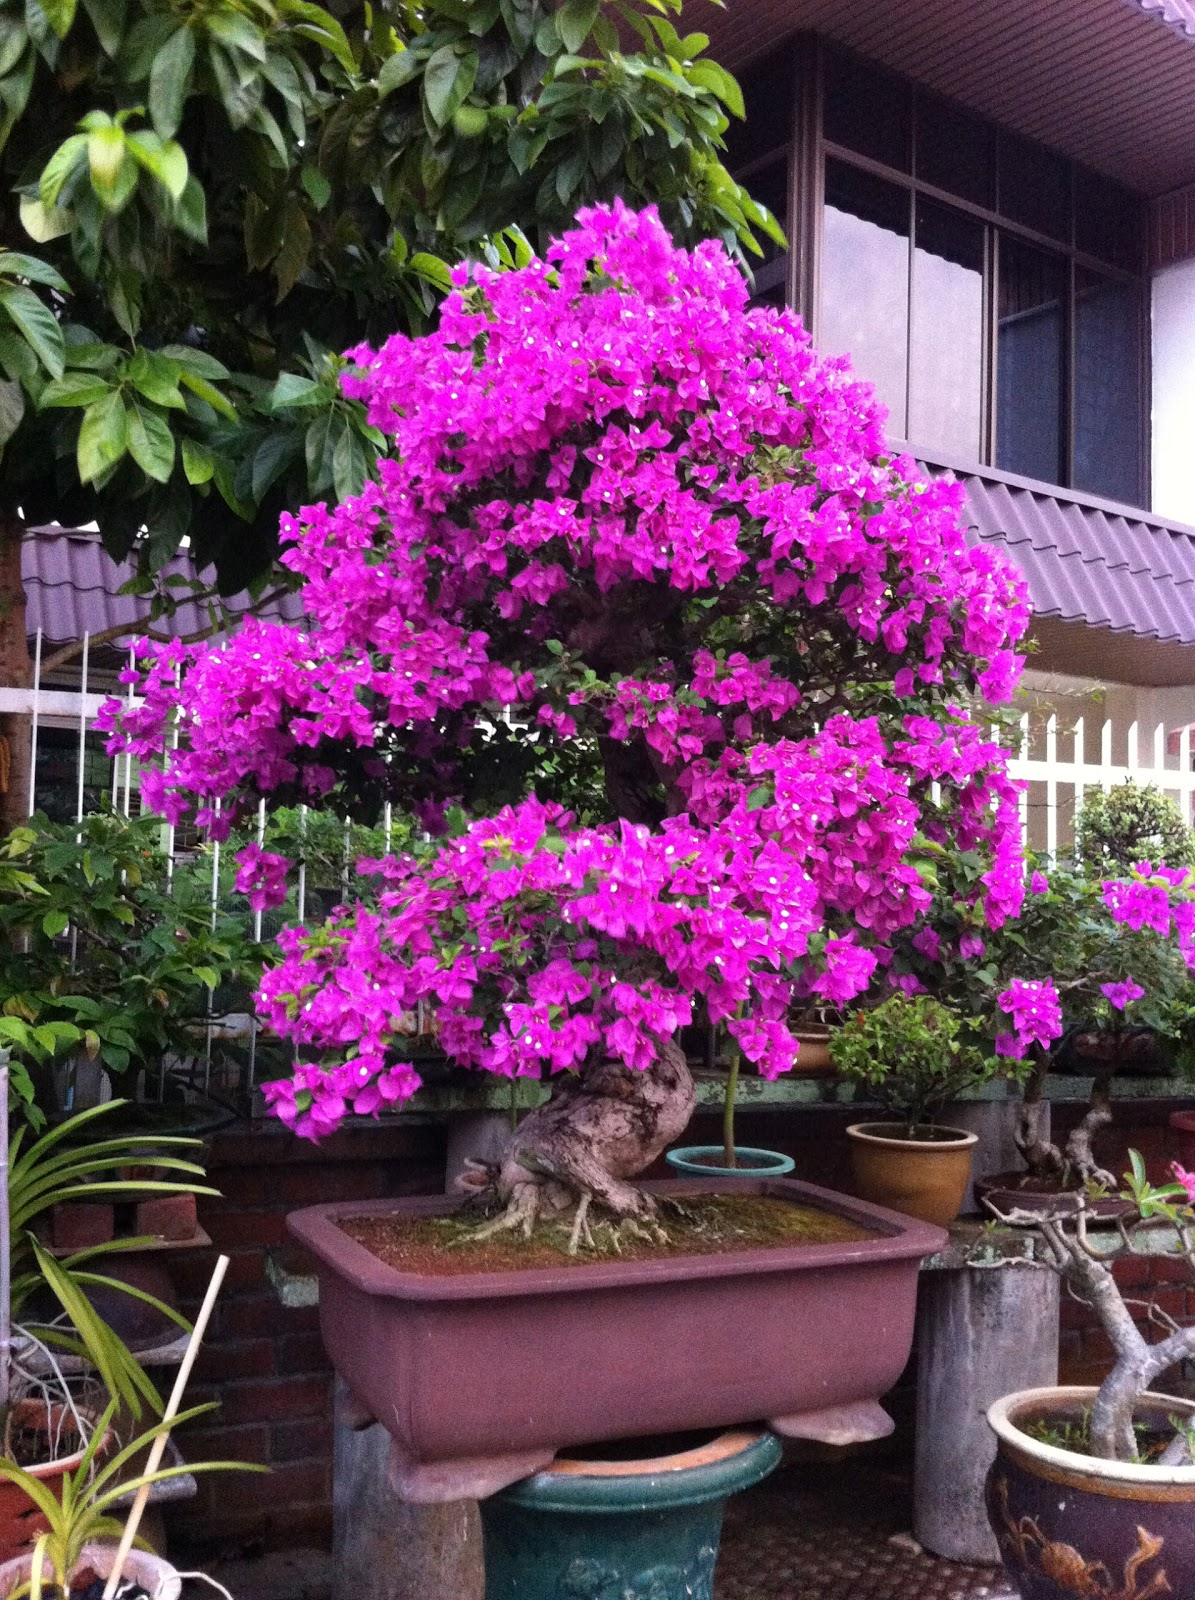 OhiPPo39s Backyard Bougainvillea Bonsai Sighting